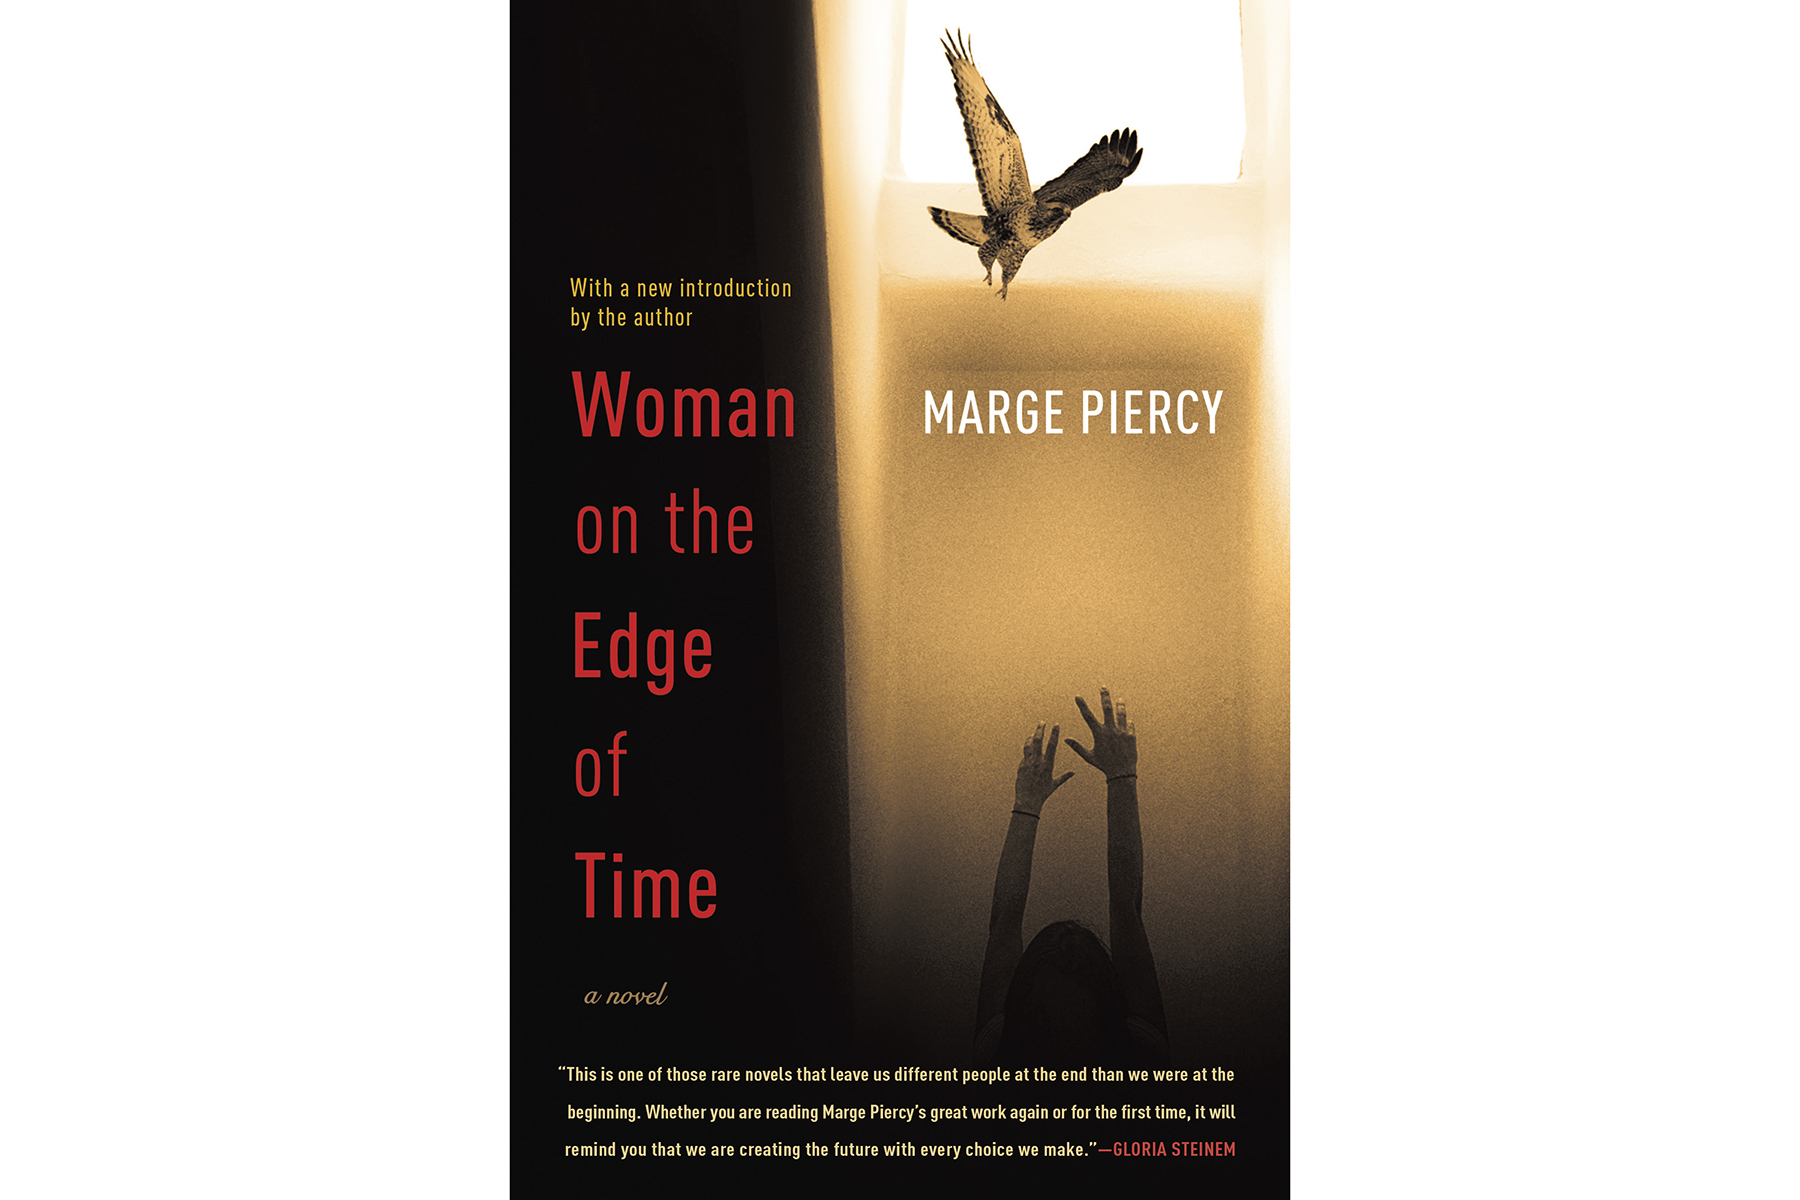 The Woman on the Edge of Time (Handmaid's Tale)